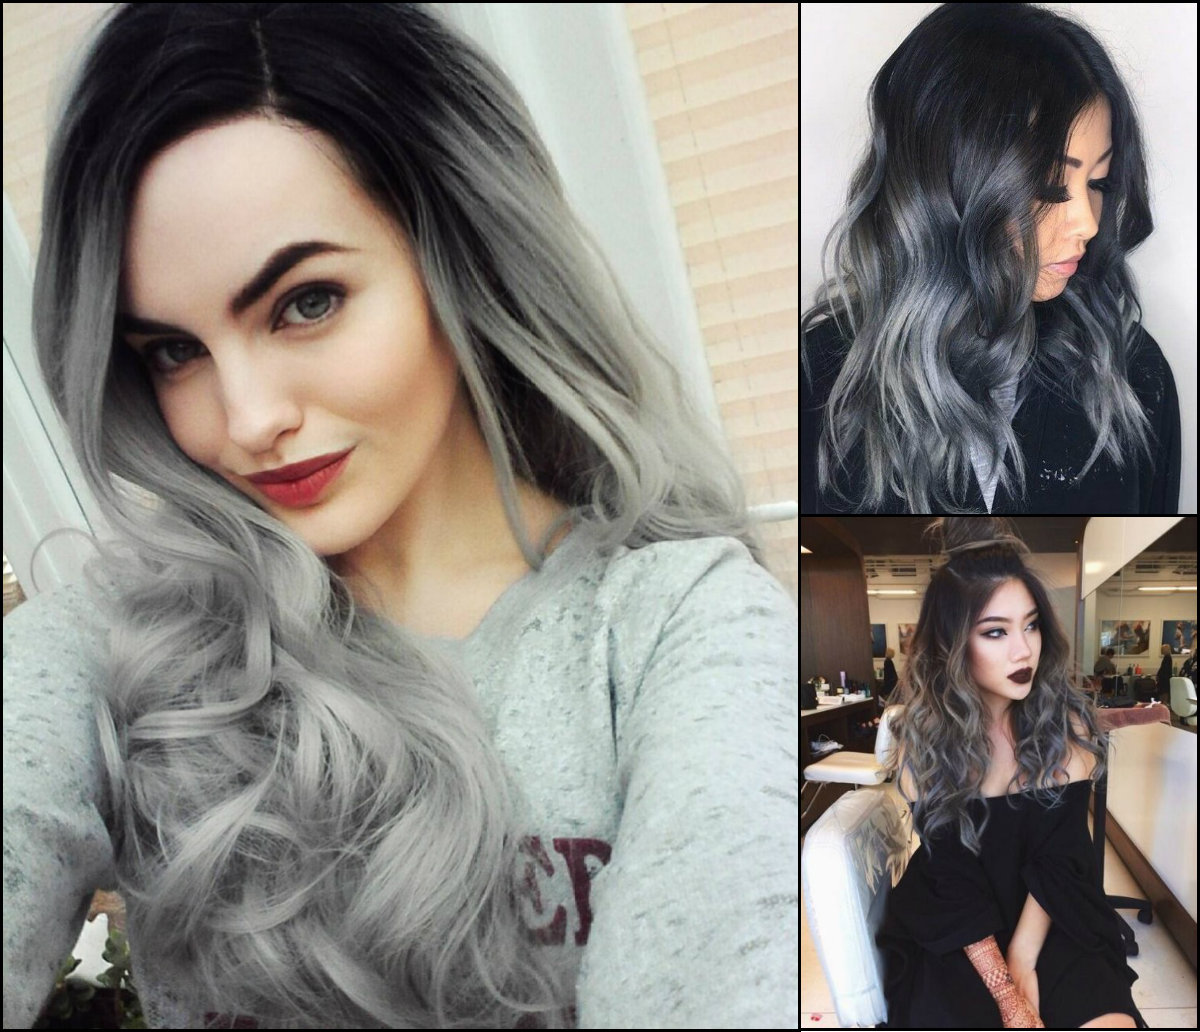 hairstyle ideas archives page 3 of 10 hairstyles 2017 hair colors and haircuts. Black Bedroom Furniture Sets. Home Design Ideas